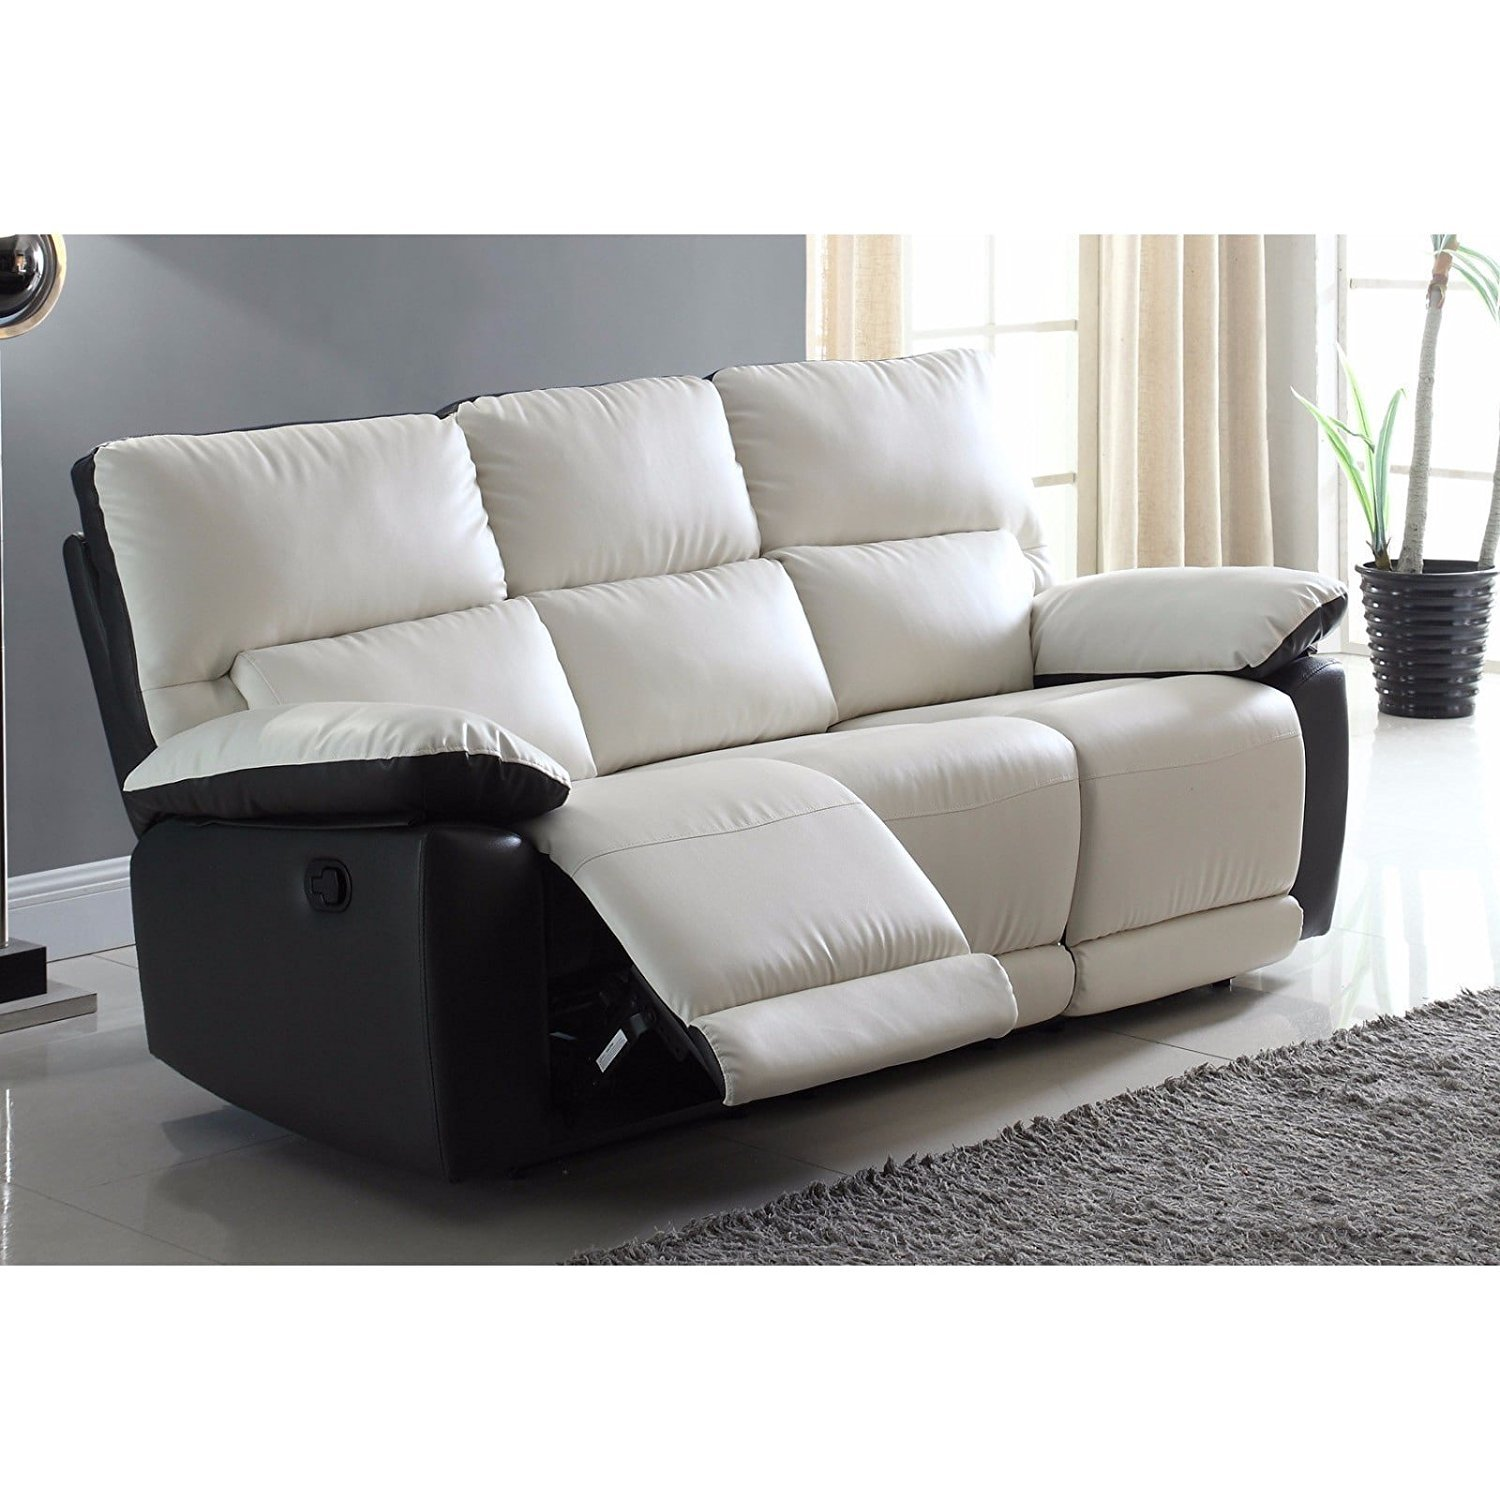 Etonnant Modern Two Tone Bonded Leather Oversize Recliner Sofa